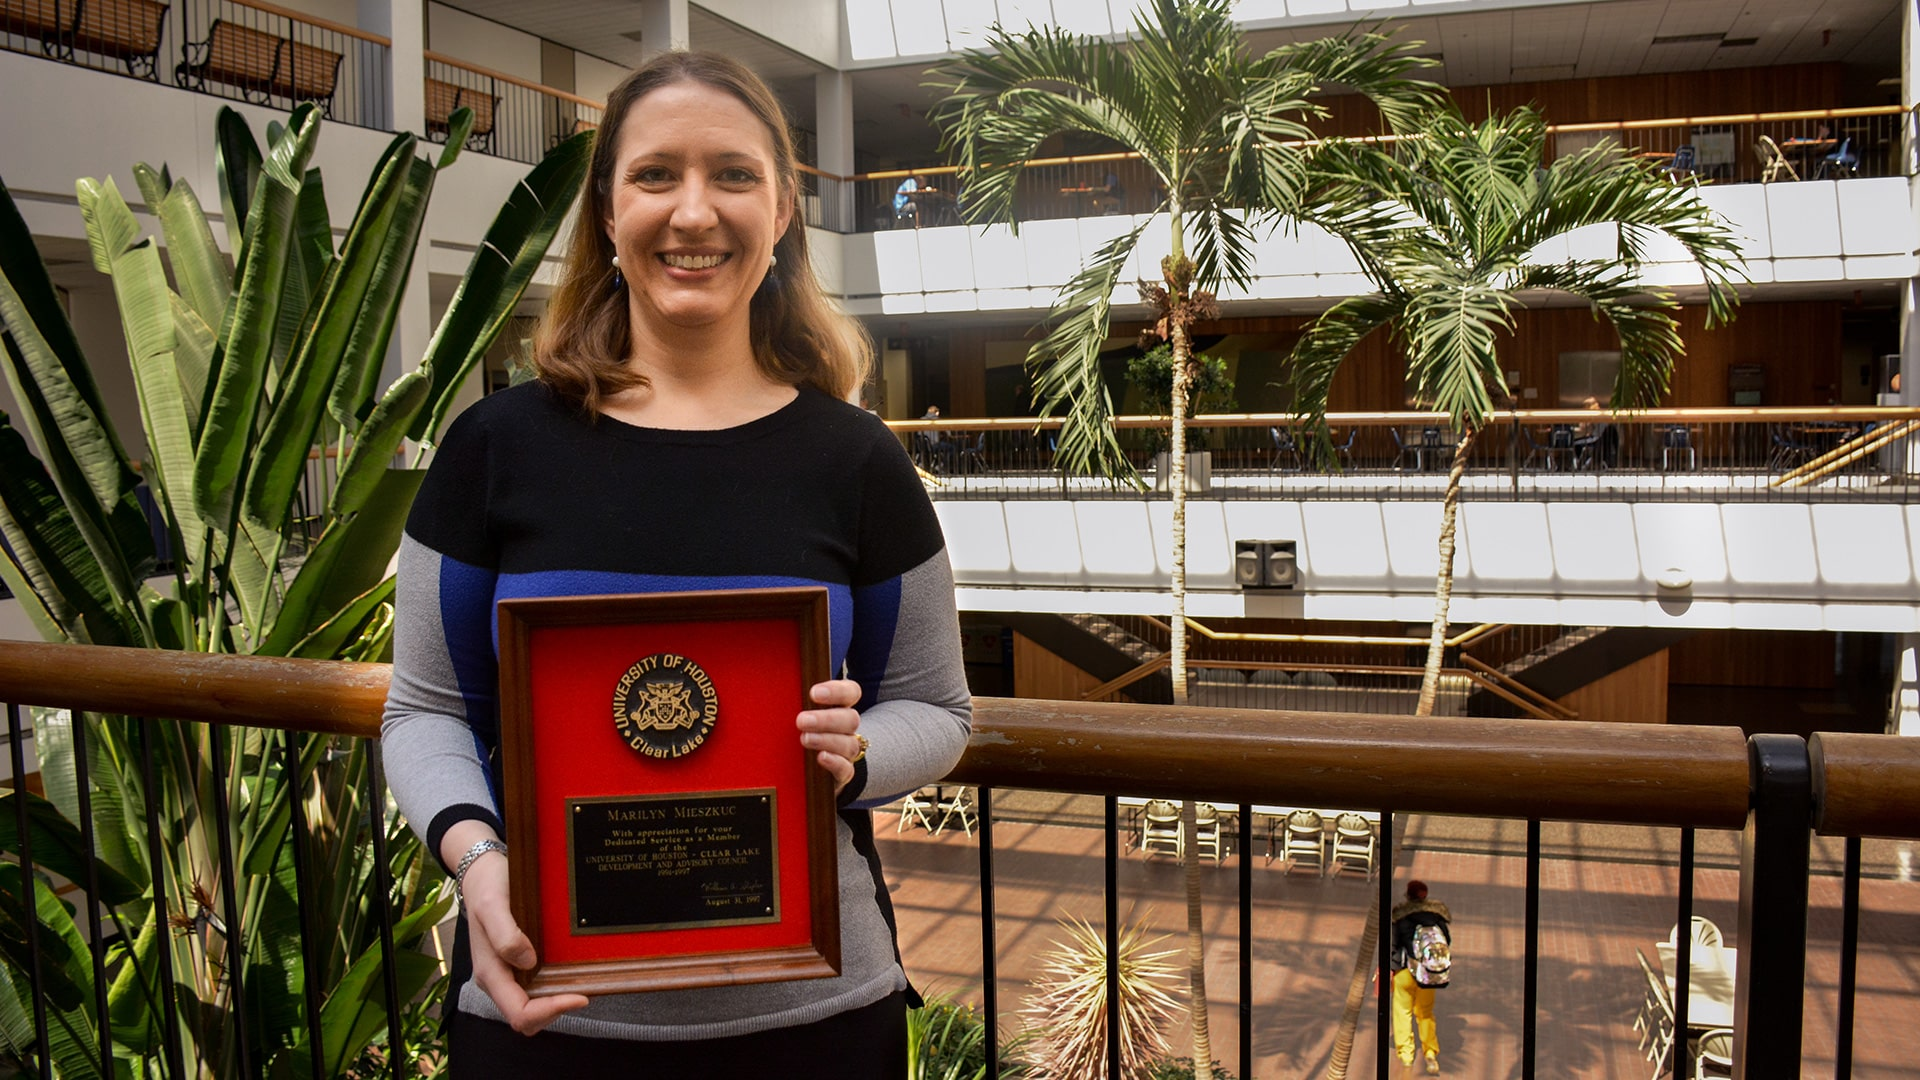 Psych professor to research biases toward sufferers of substance abuse with research endowment